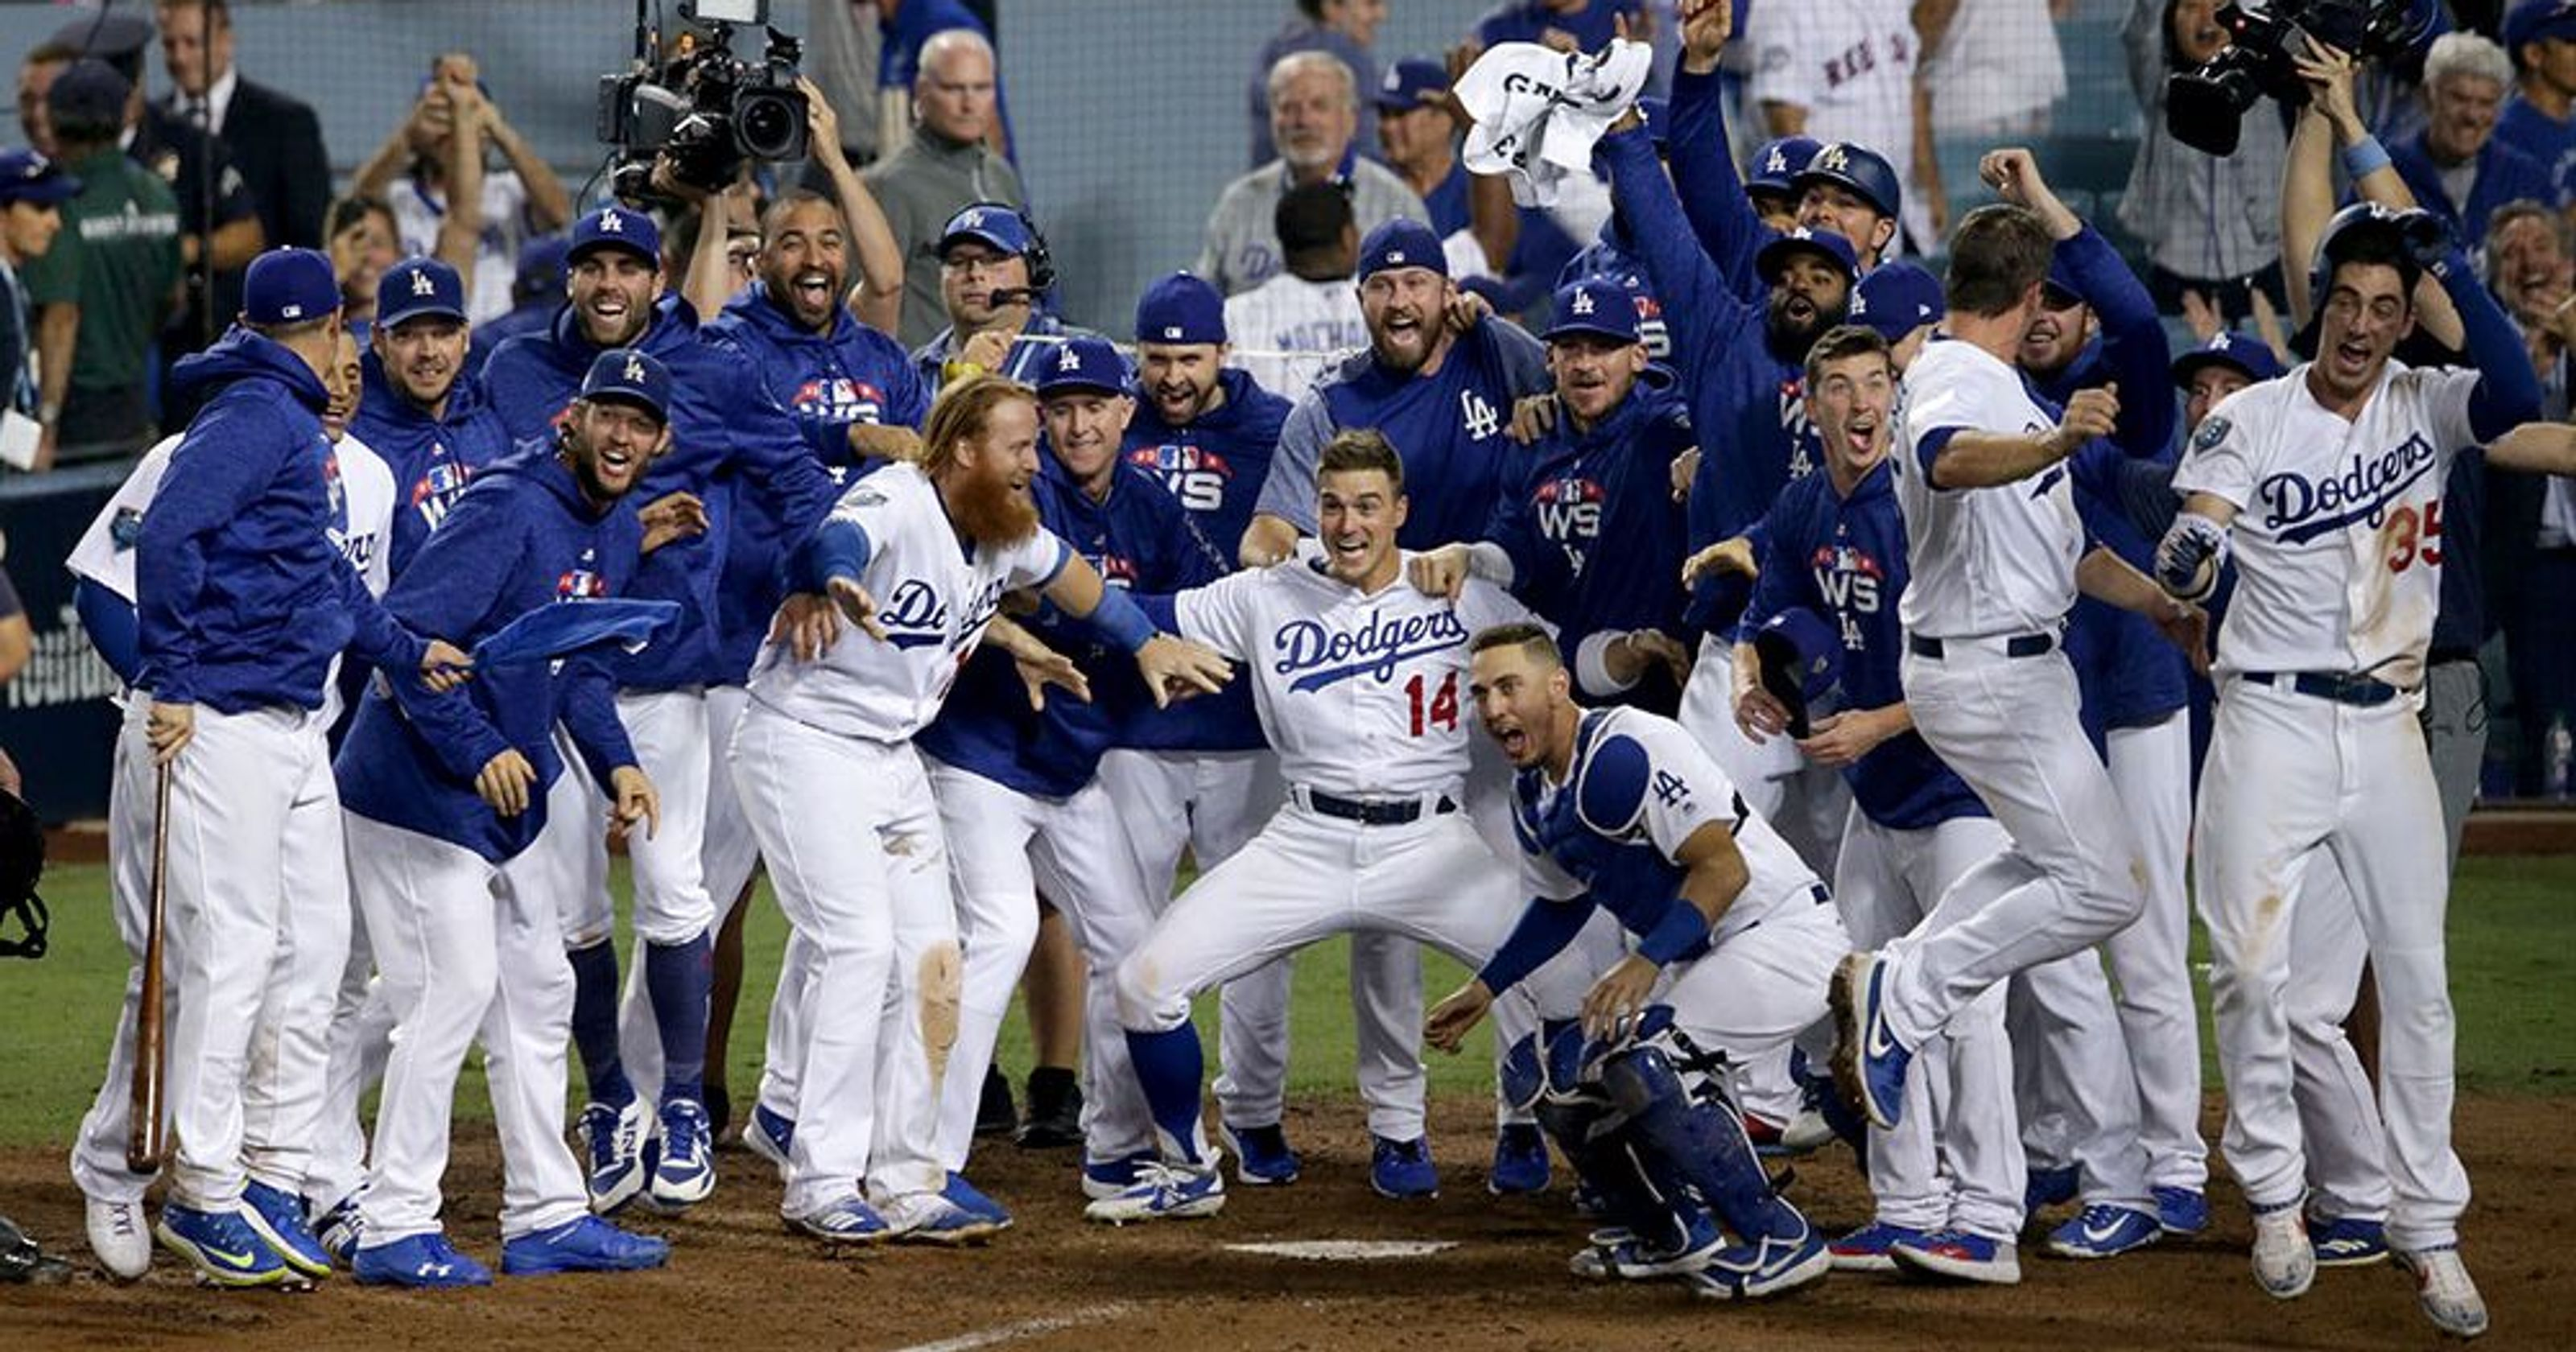 Dodgers react to walk-off in stunning video | Sports Life Tale